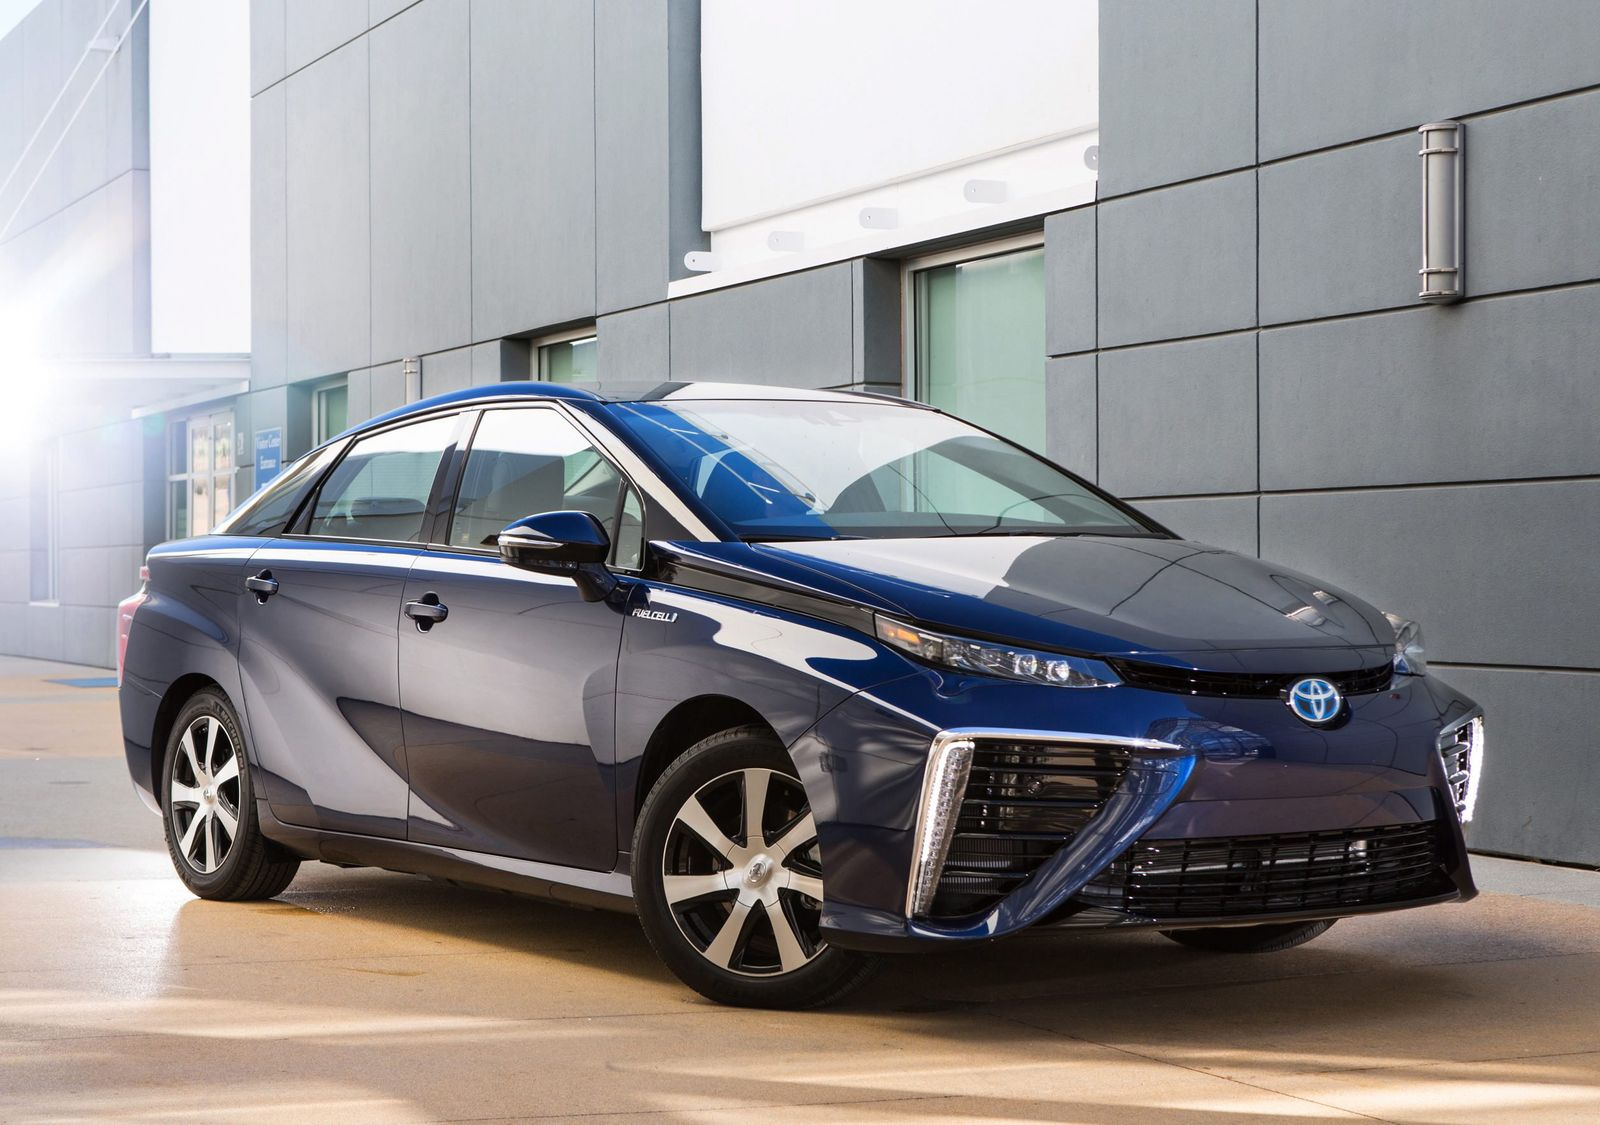 The Fuel Cell Vehicle (FCV) is an all-electric, called 'Mirai